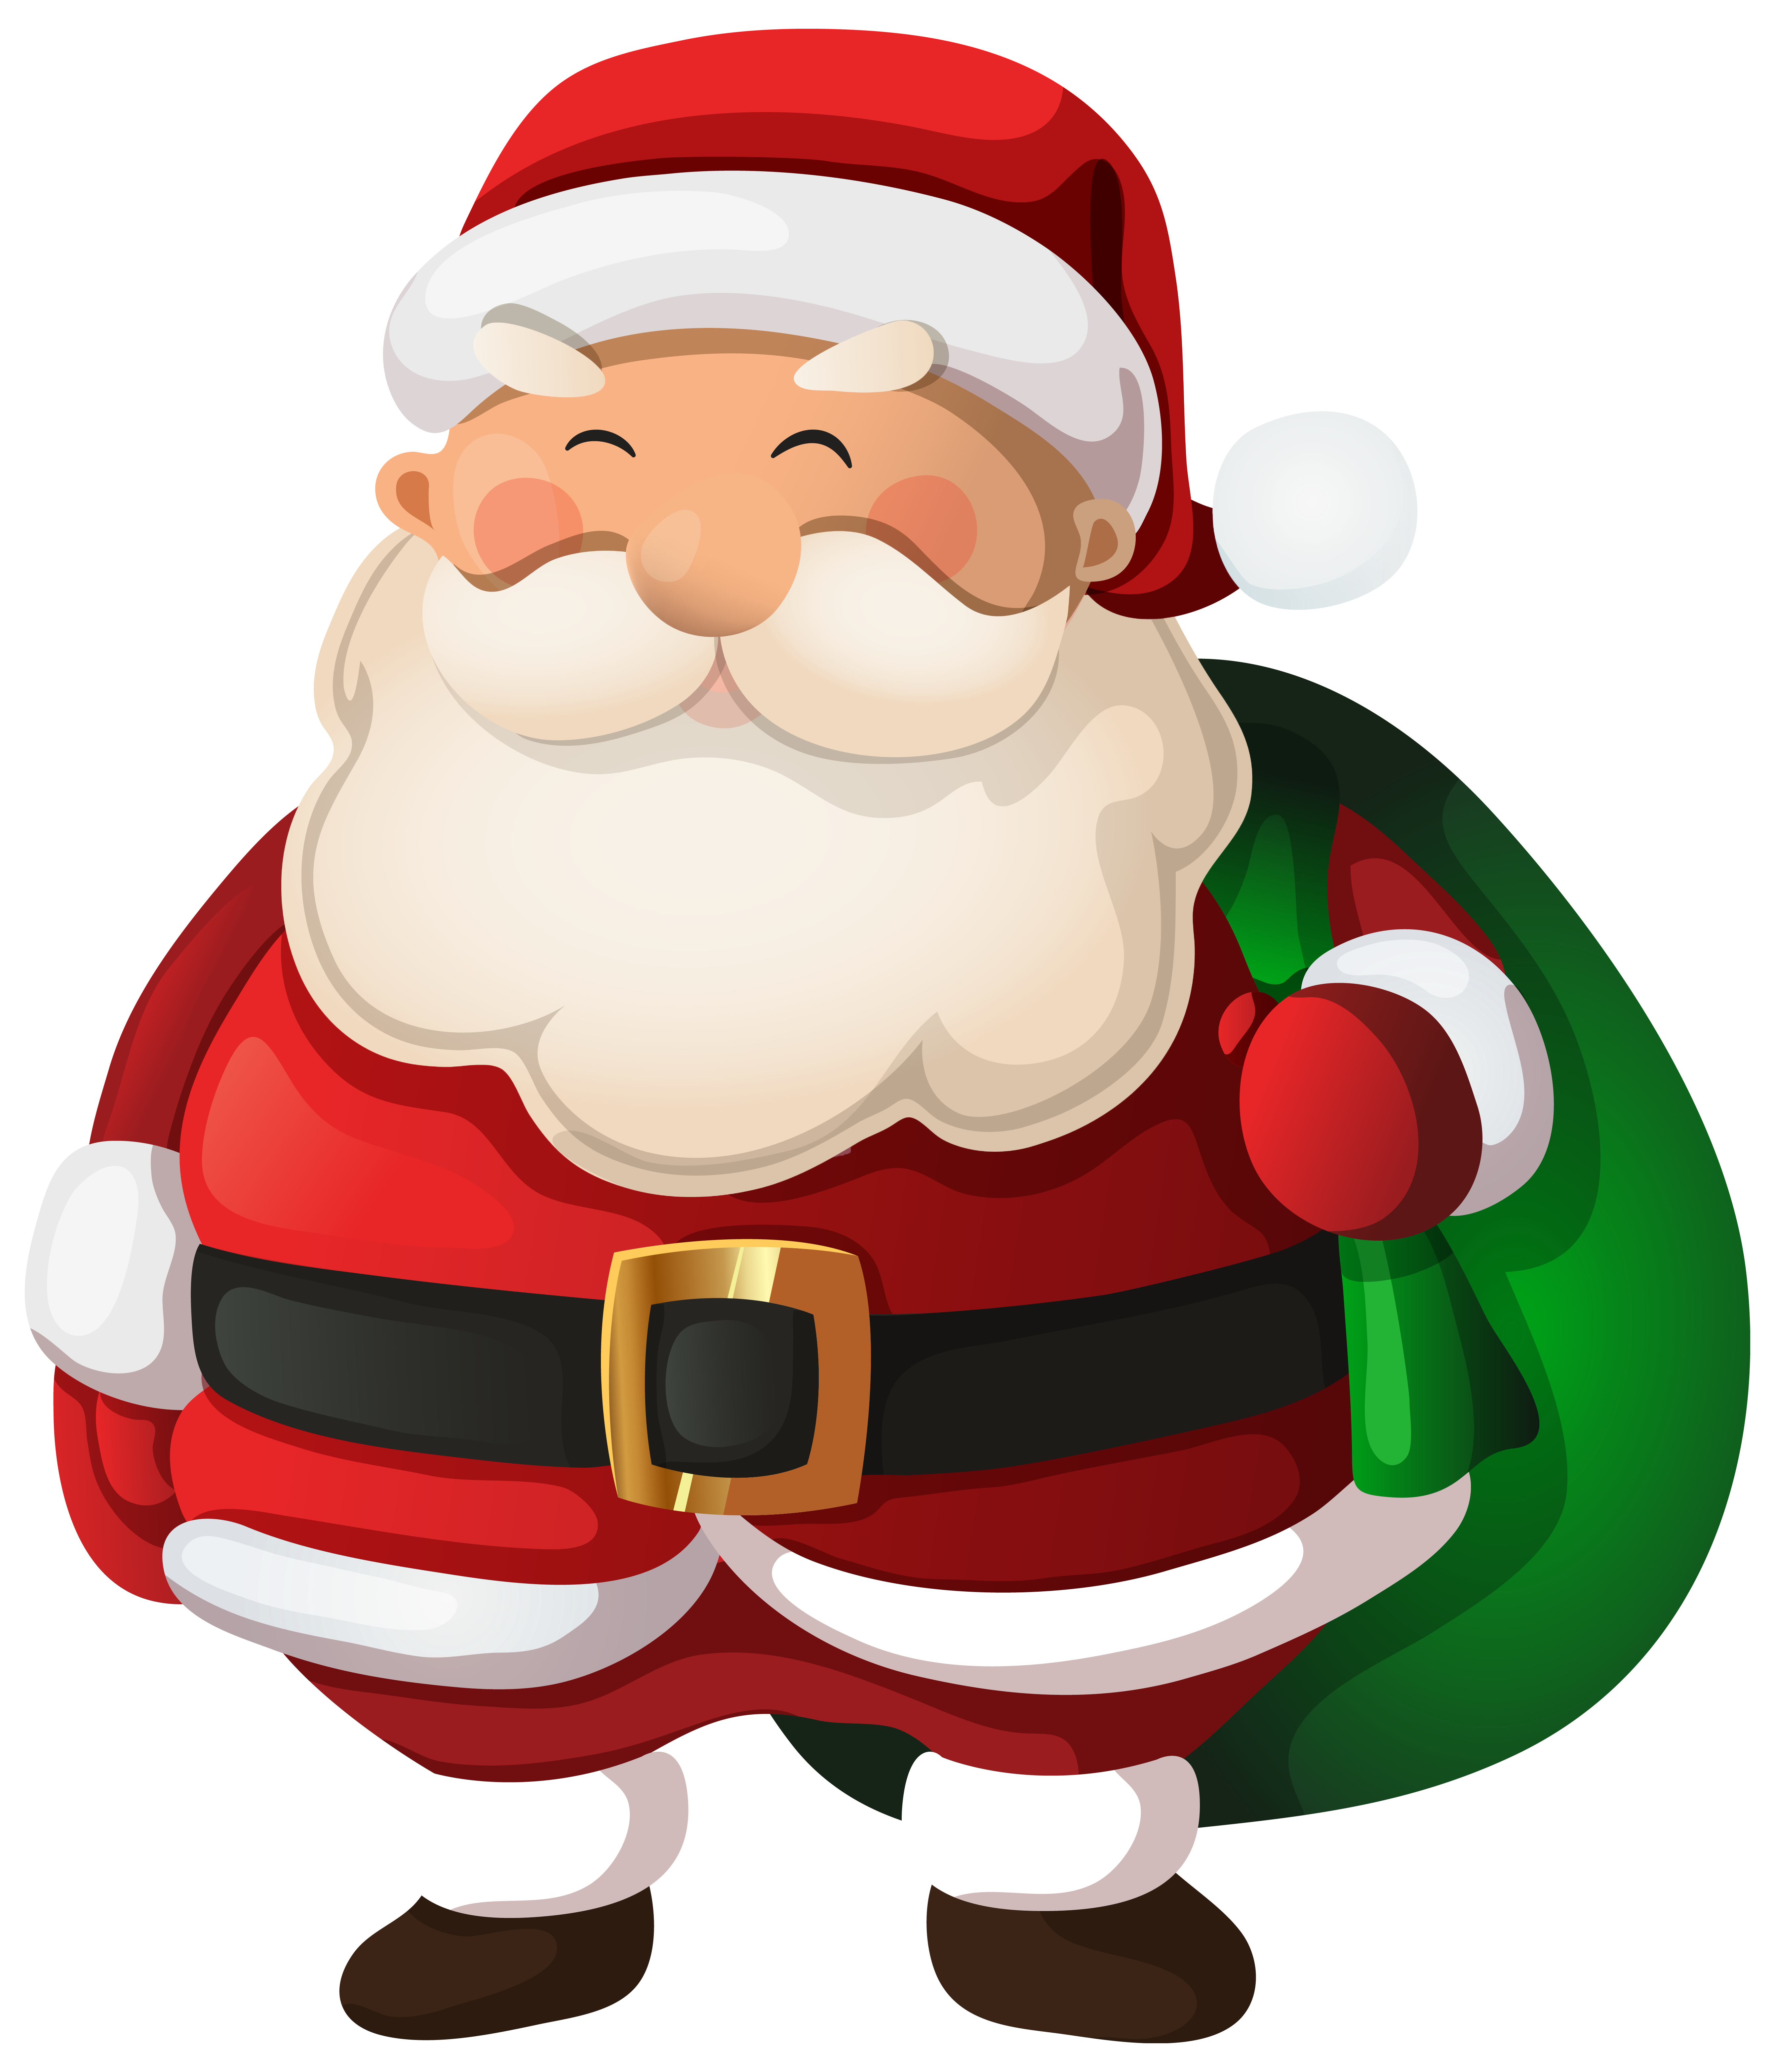 Santa Claus Clipart 20 Free Cliparts Download Images On